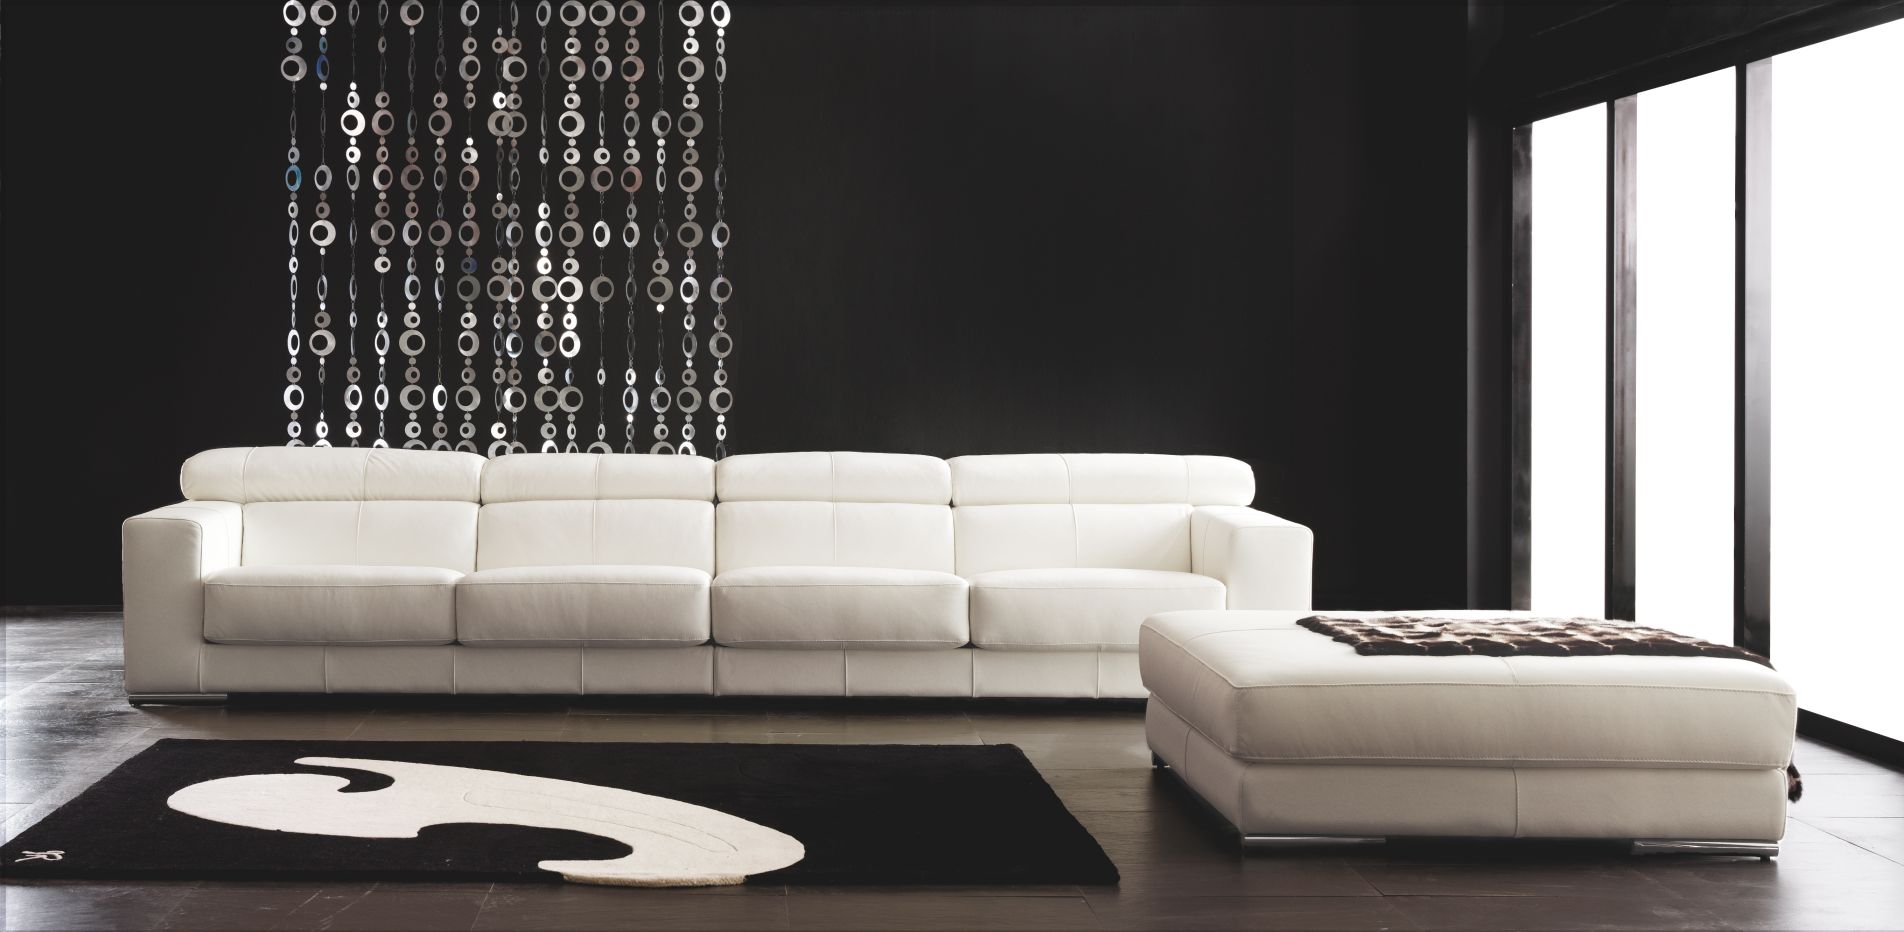 Bilbao Modern Sectional Sofa By Nicoletti Italy Modern  # Muebles Matisse